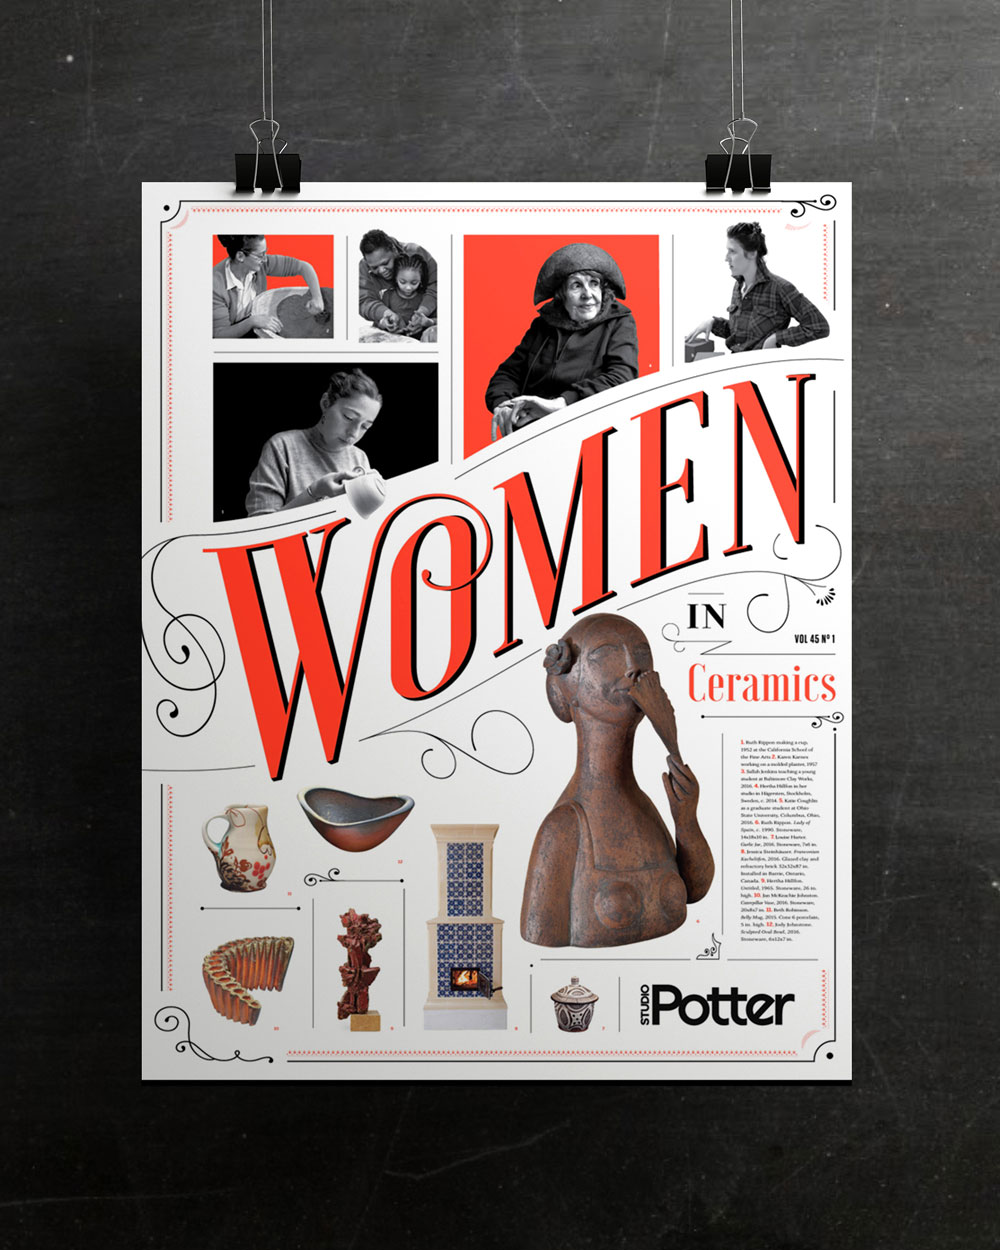 Poster design for New England based magazine, Studio Potter.